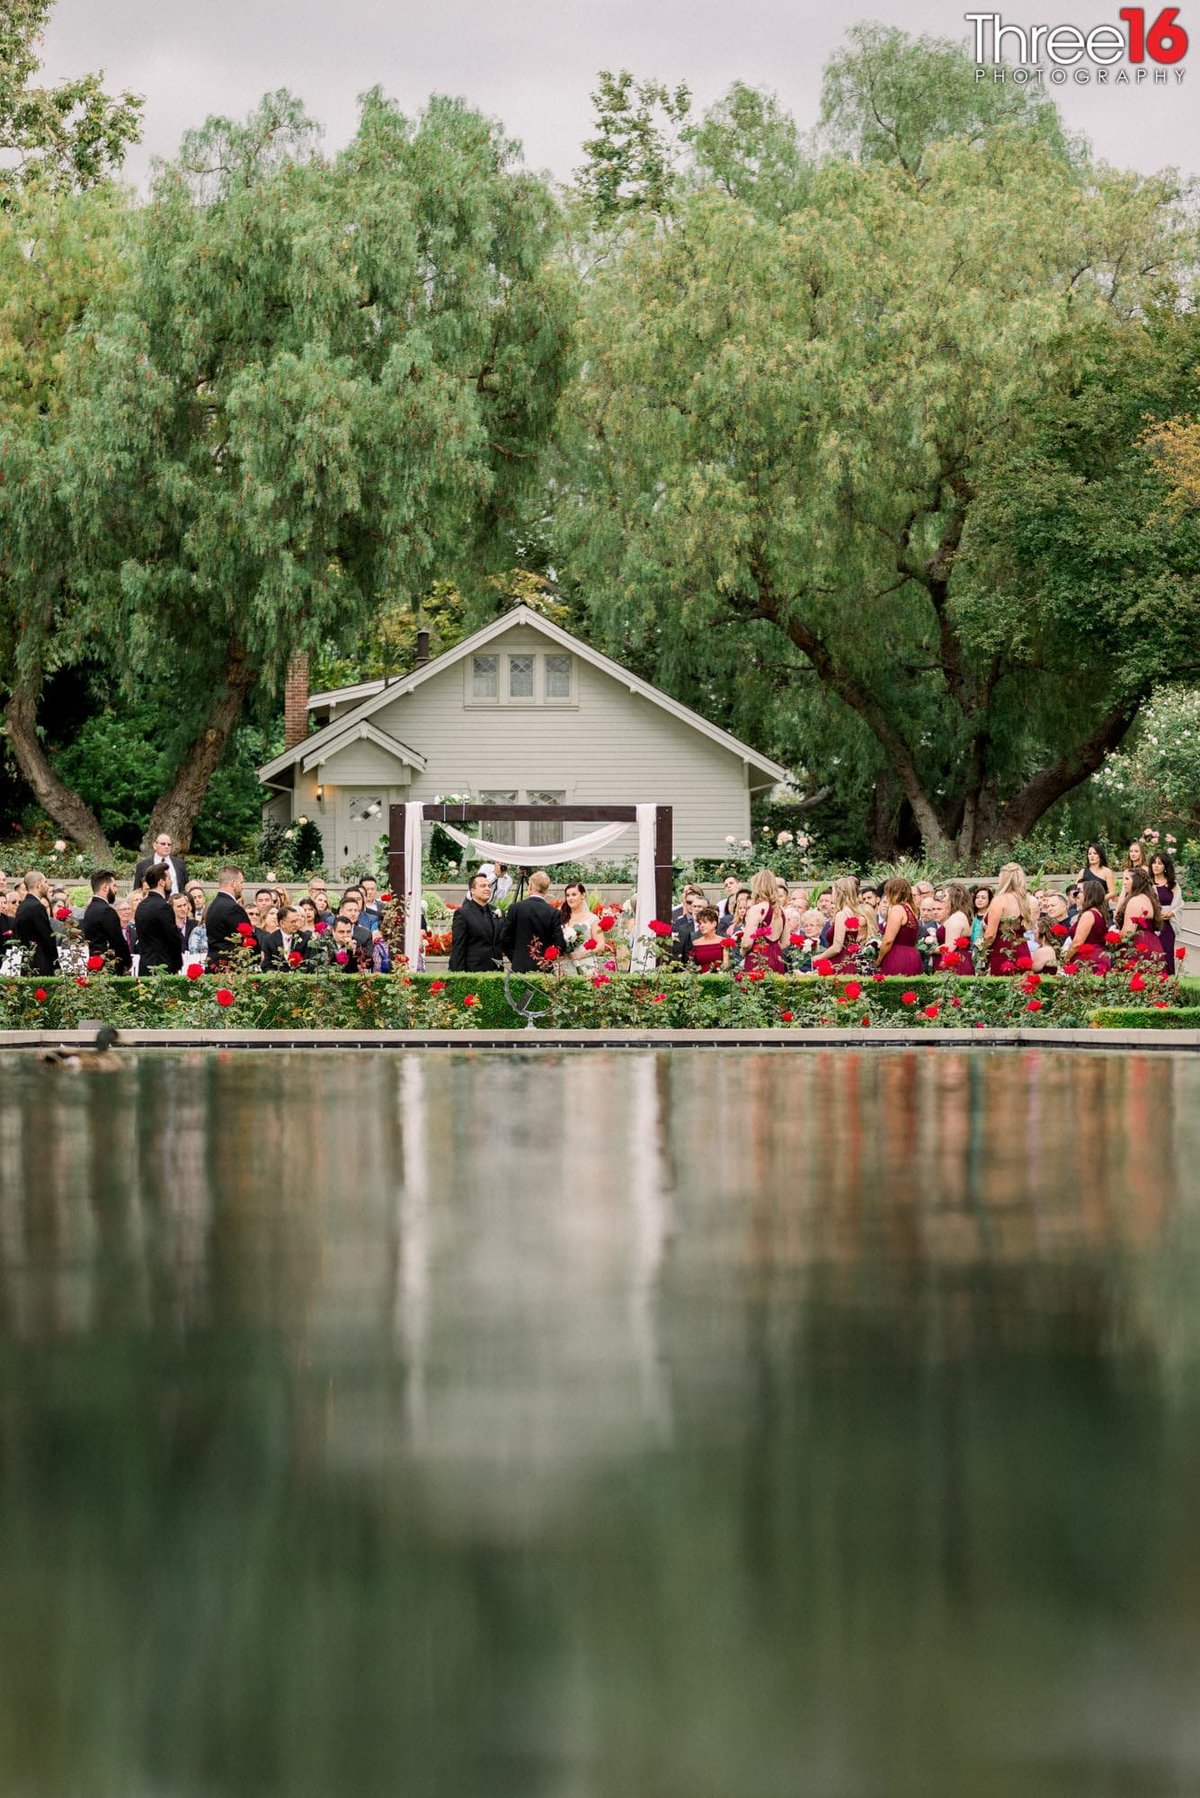 Wedding Ceremony from across the reflecting pool at the Richard Nixon Library